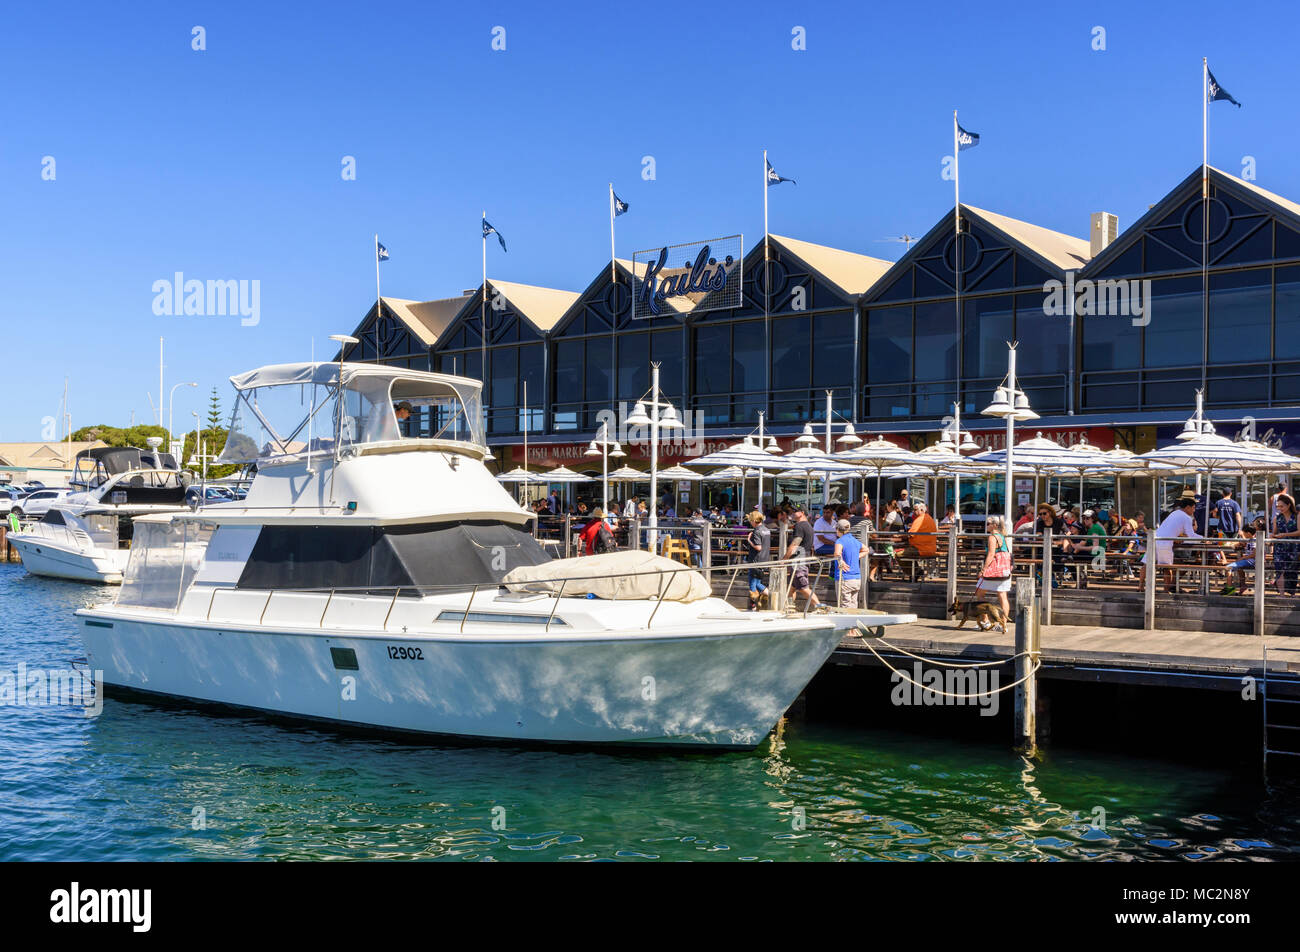 Kailis Bros seafood restaurant along the waterfront boardwalk at Fremantle Fishing Boat Harbour Fremantle, Western Australia, Australia - Stock Image